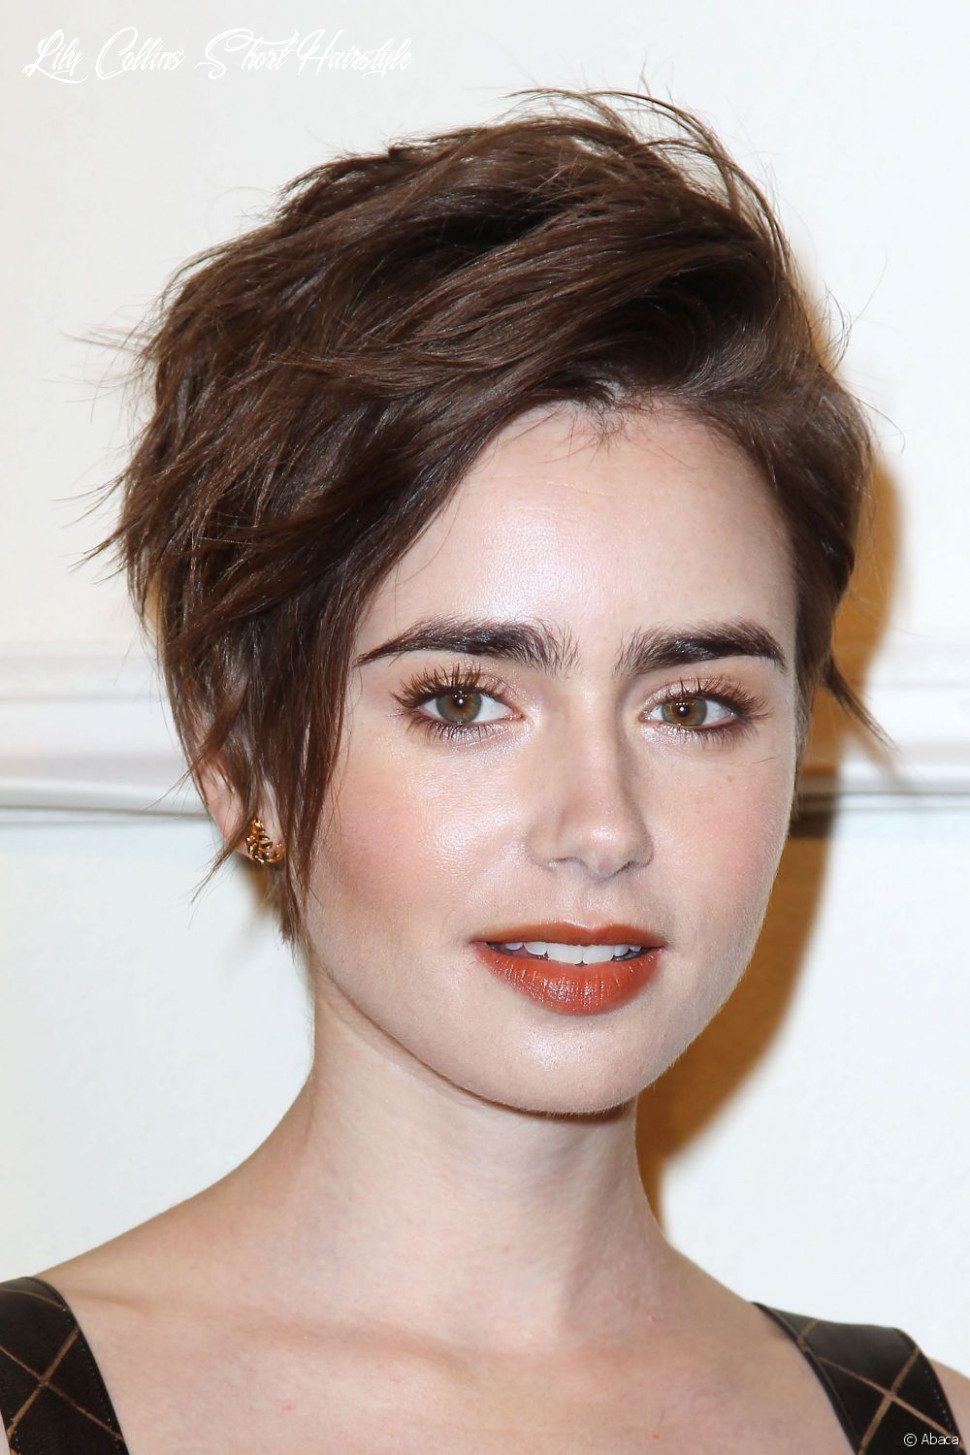 Lily Collins: how to get her tousled pixie hairstyle!